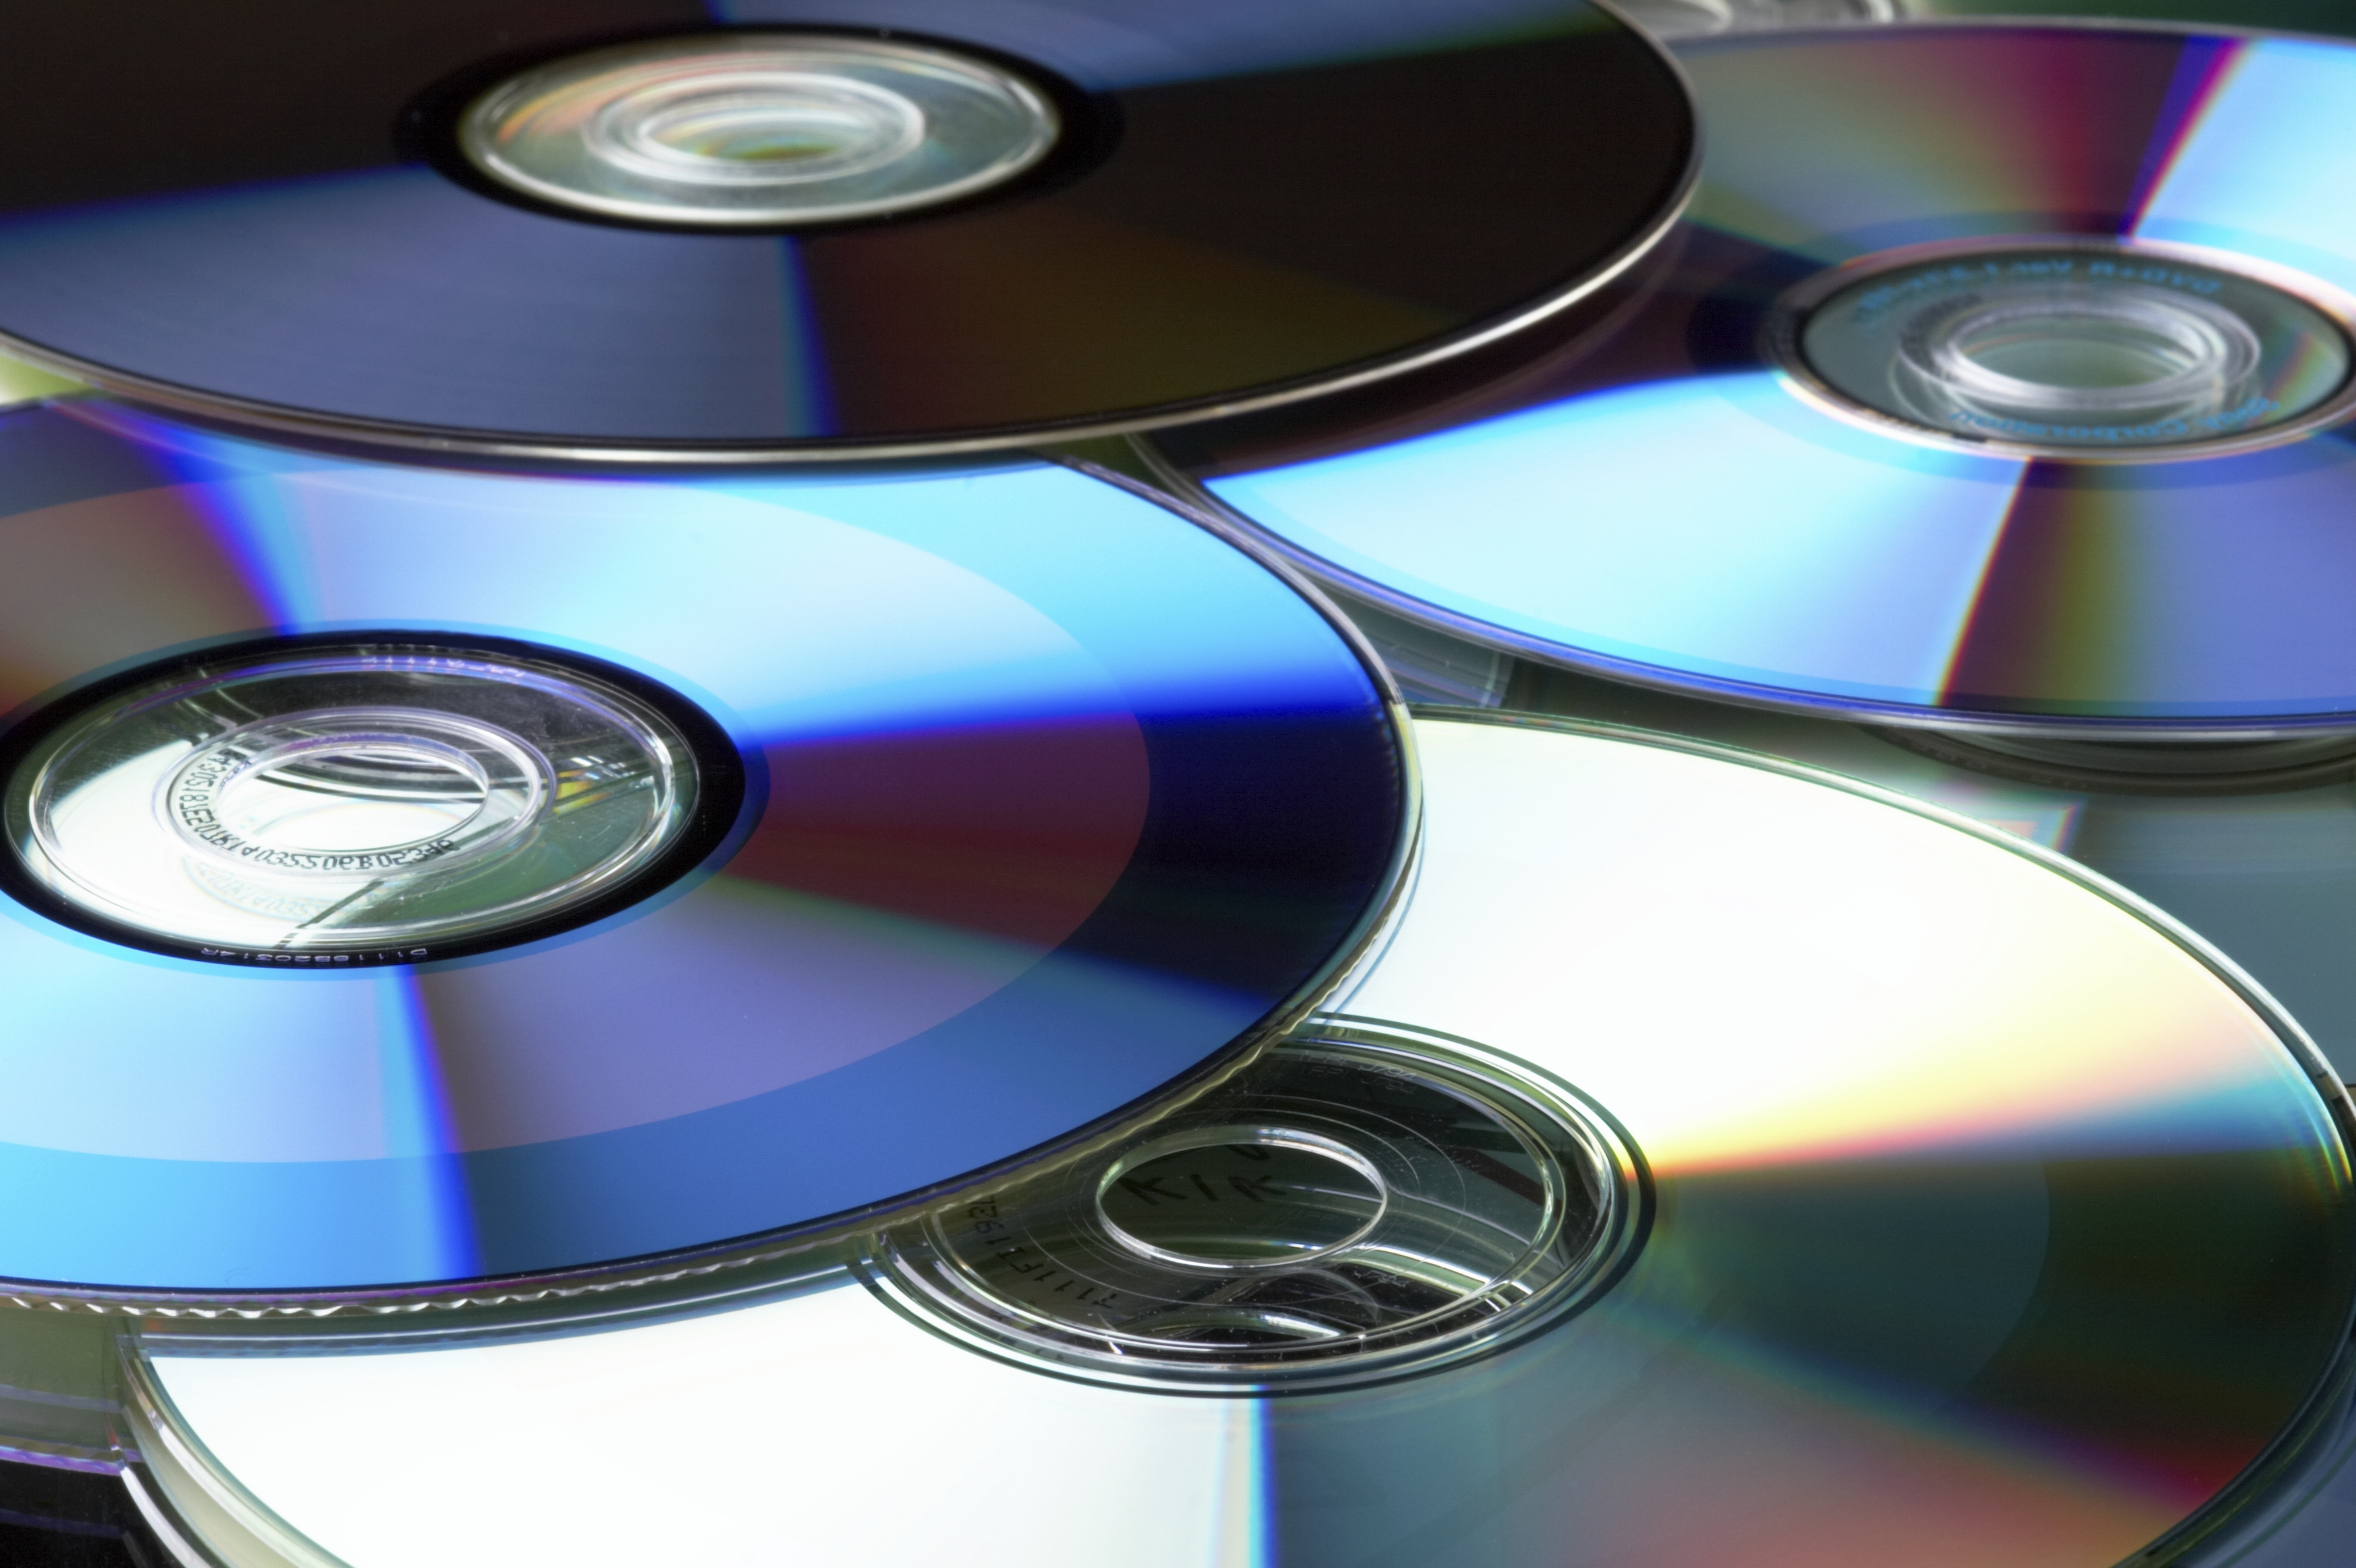 CD Replication vs CD Duplication: What's the Difference?